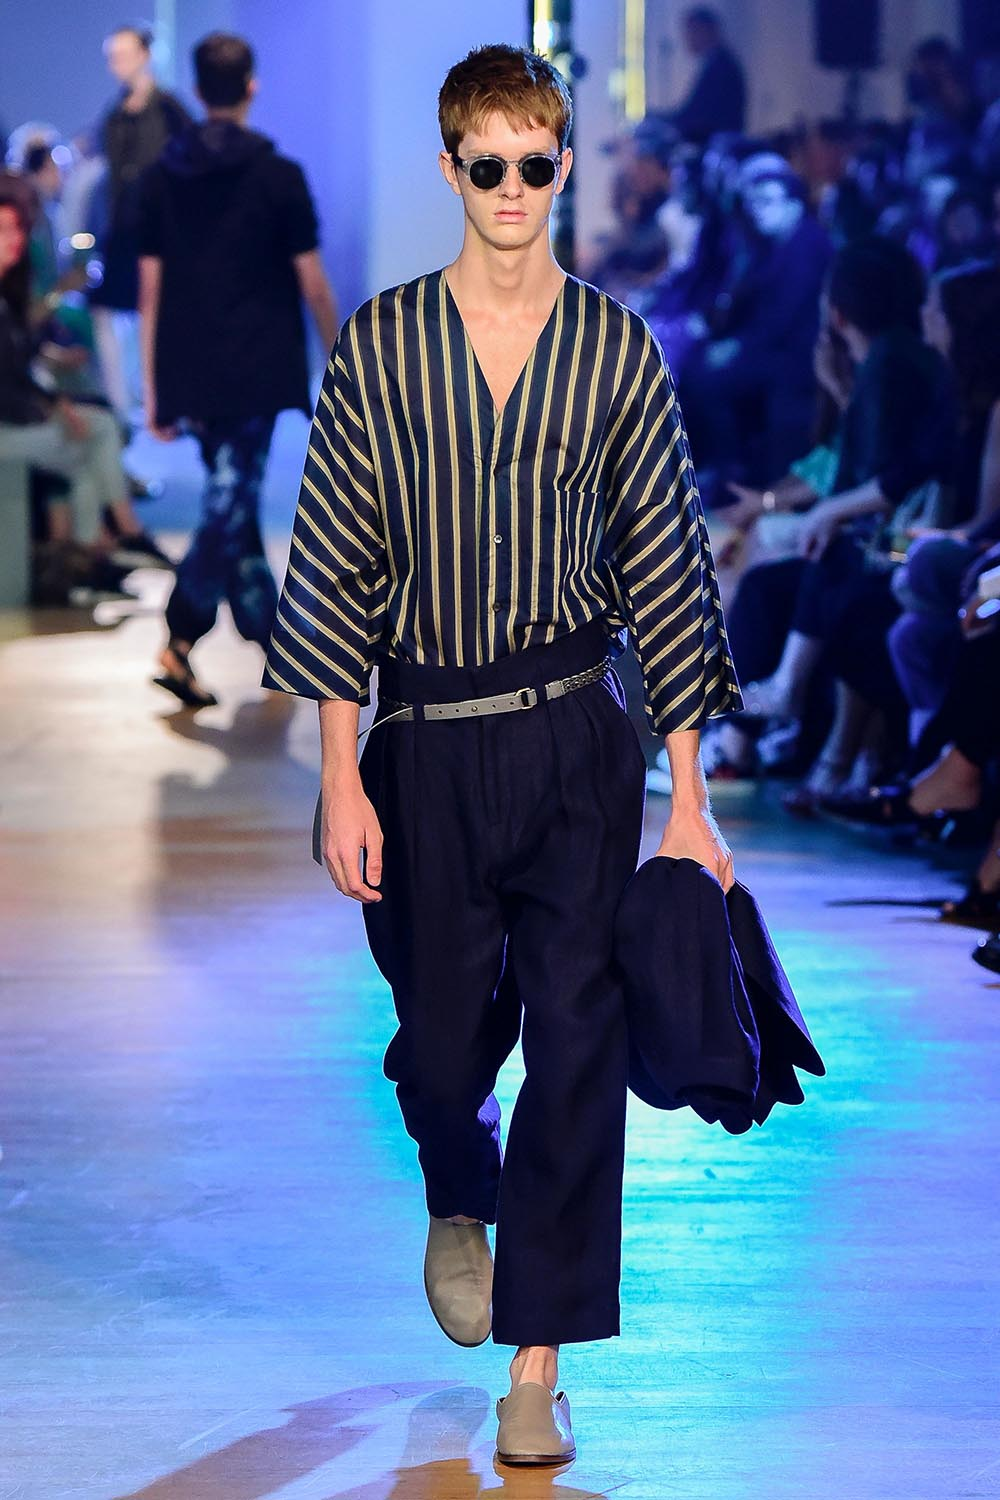 Cerruti 1881 Paris Fashion Week Men's SS19 - Sagaboi - Look 30